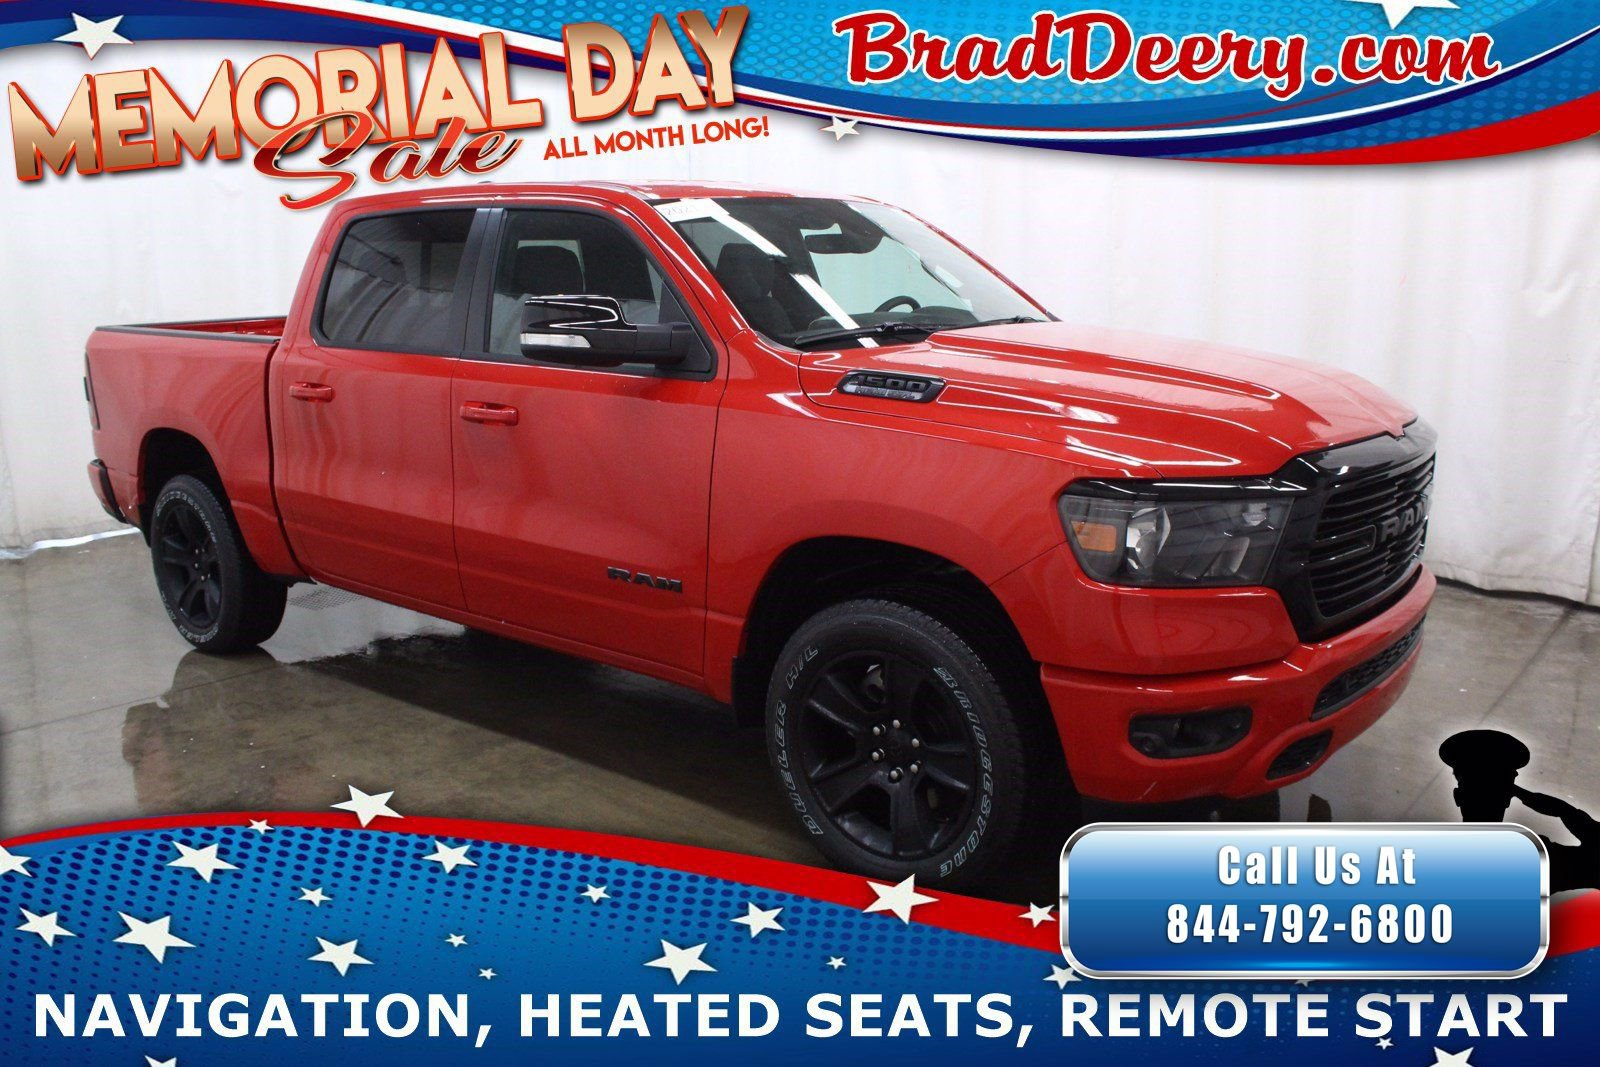 2021 Ram 1500 Big Horn Crew Cab 4x4  **NIGHT EDITION** w/ Navigation, Heated Seats, Remote Start & Level 2 Group